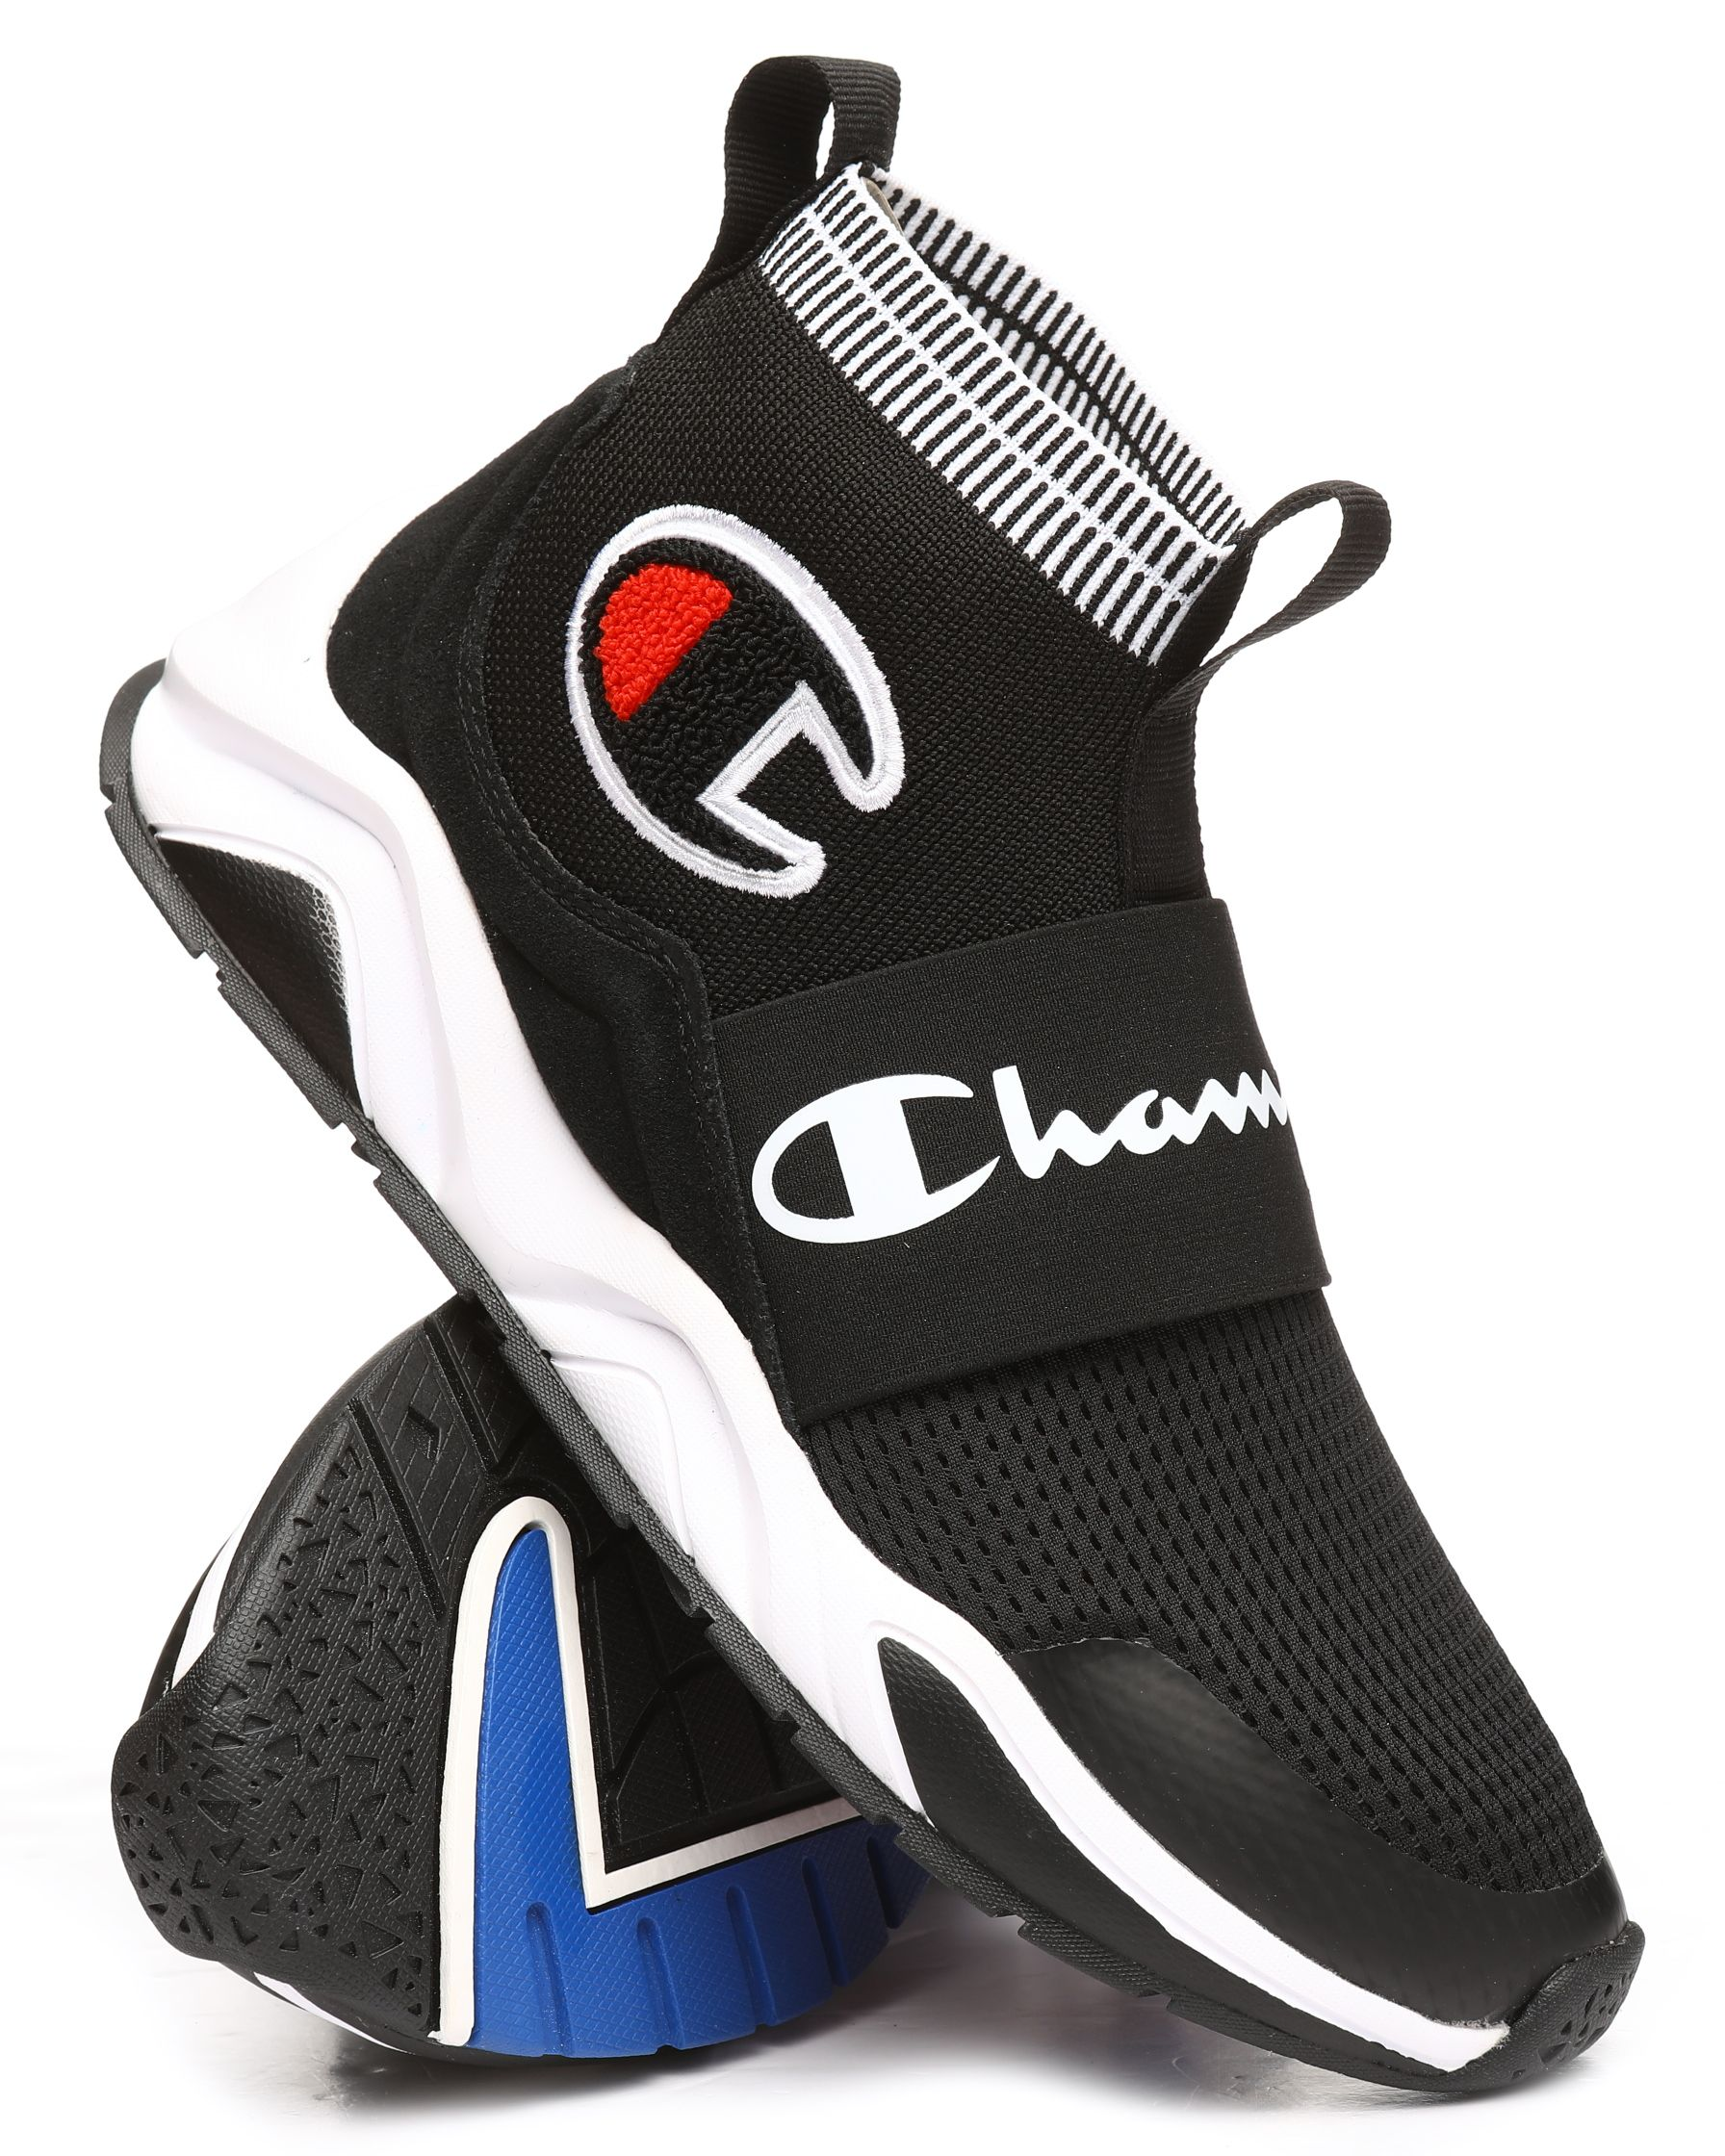 de5a5e37572 Rally Pro Sneakers from Champion at DrJays.com